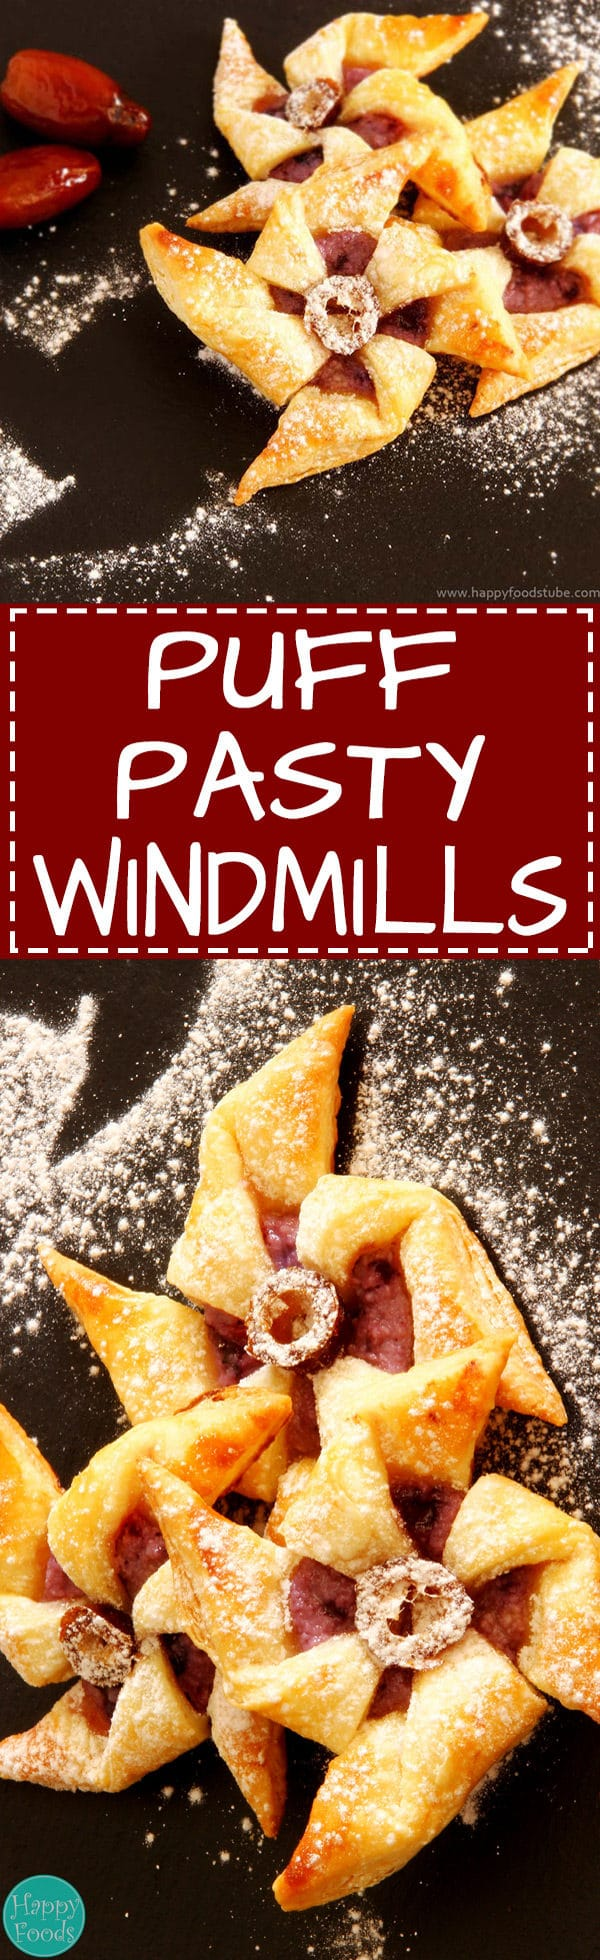 Puff Pastry Windmills - Easy bite-size dessert recipe. Great for any party!   happyfoodstube.com